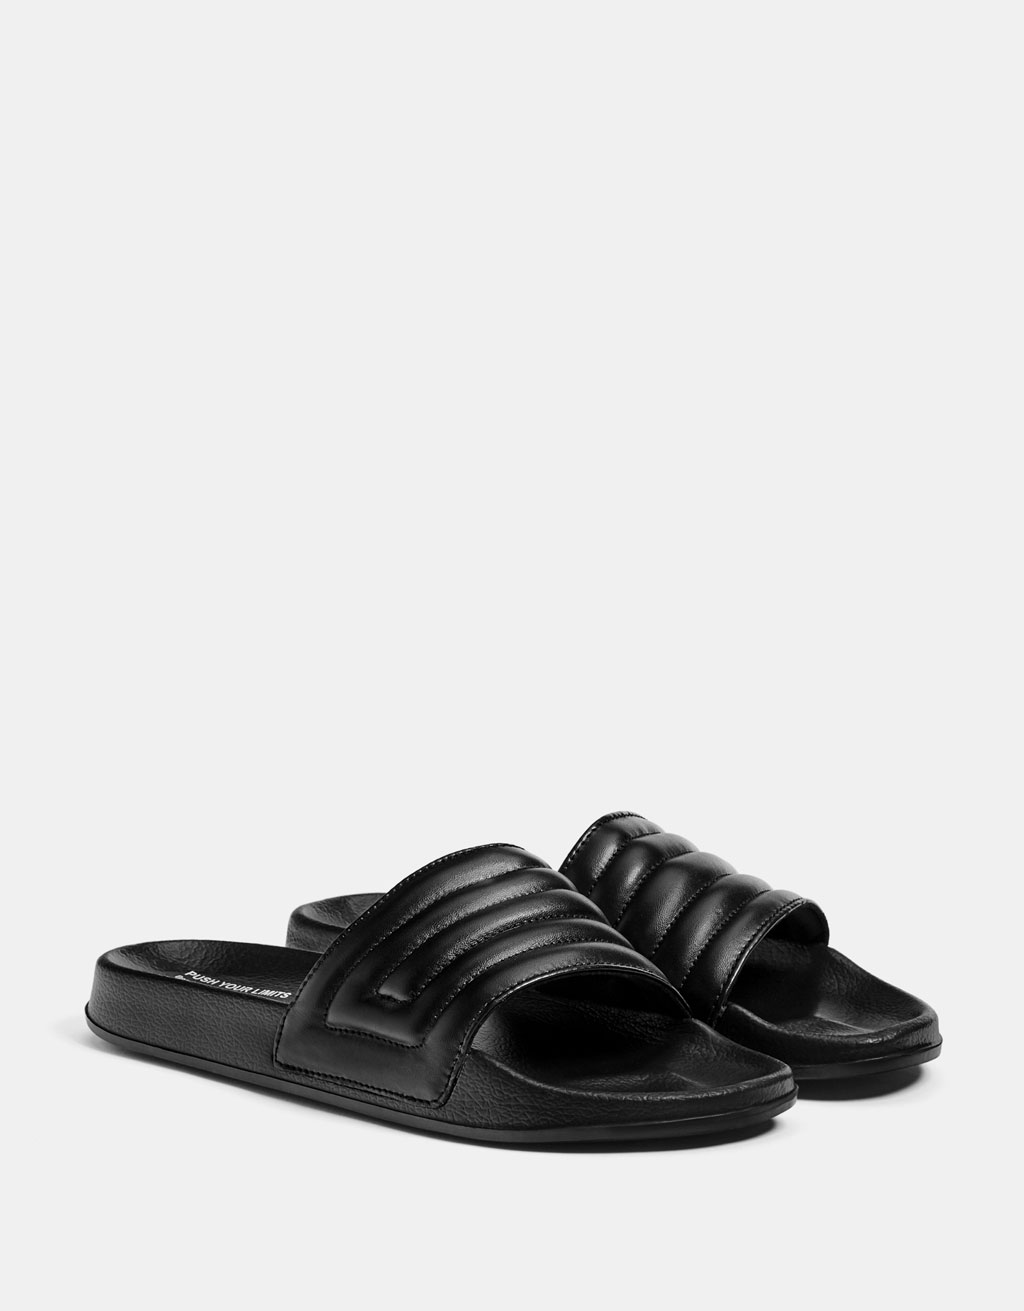 Men's quilted slide sandals